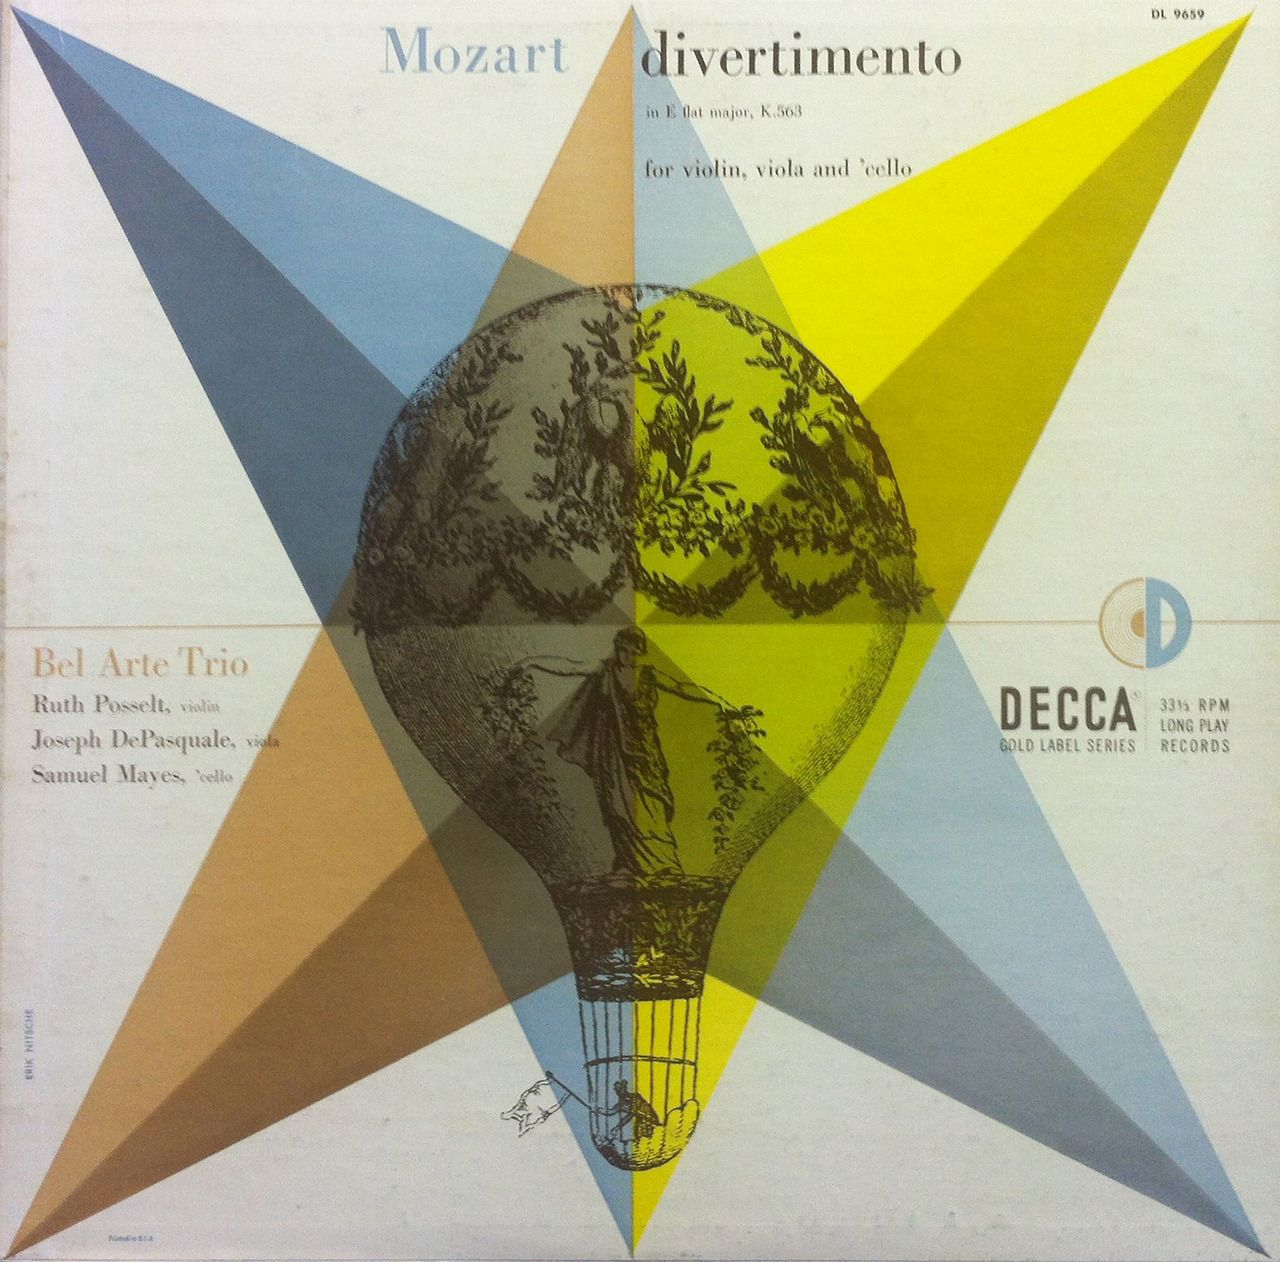 Erik Nitsche, album artwork for Bel Arte Trio, Mozart, 1959. Decca Records.